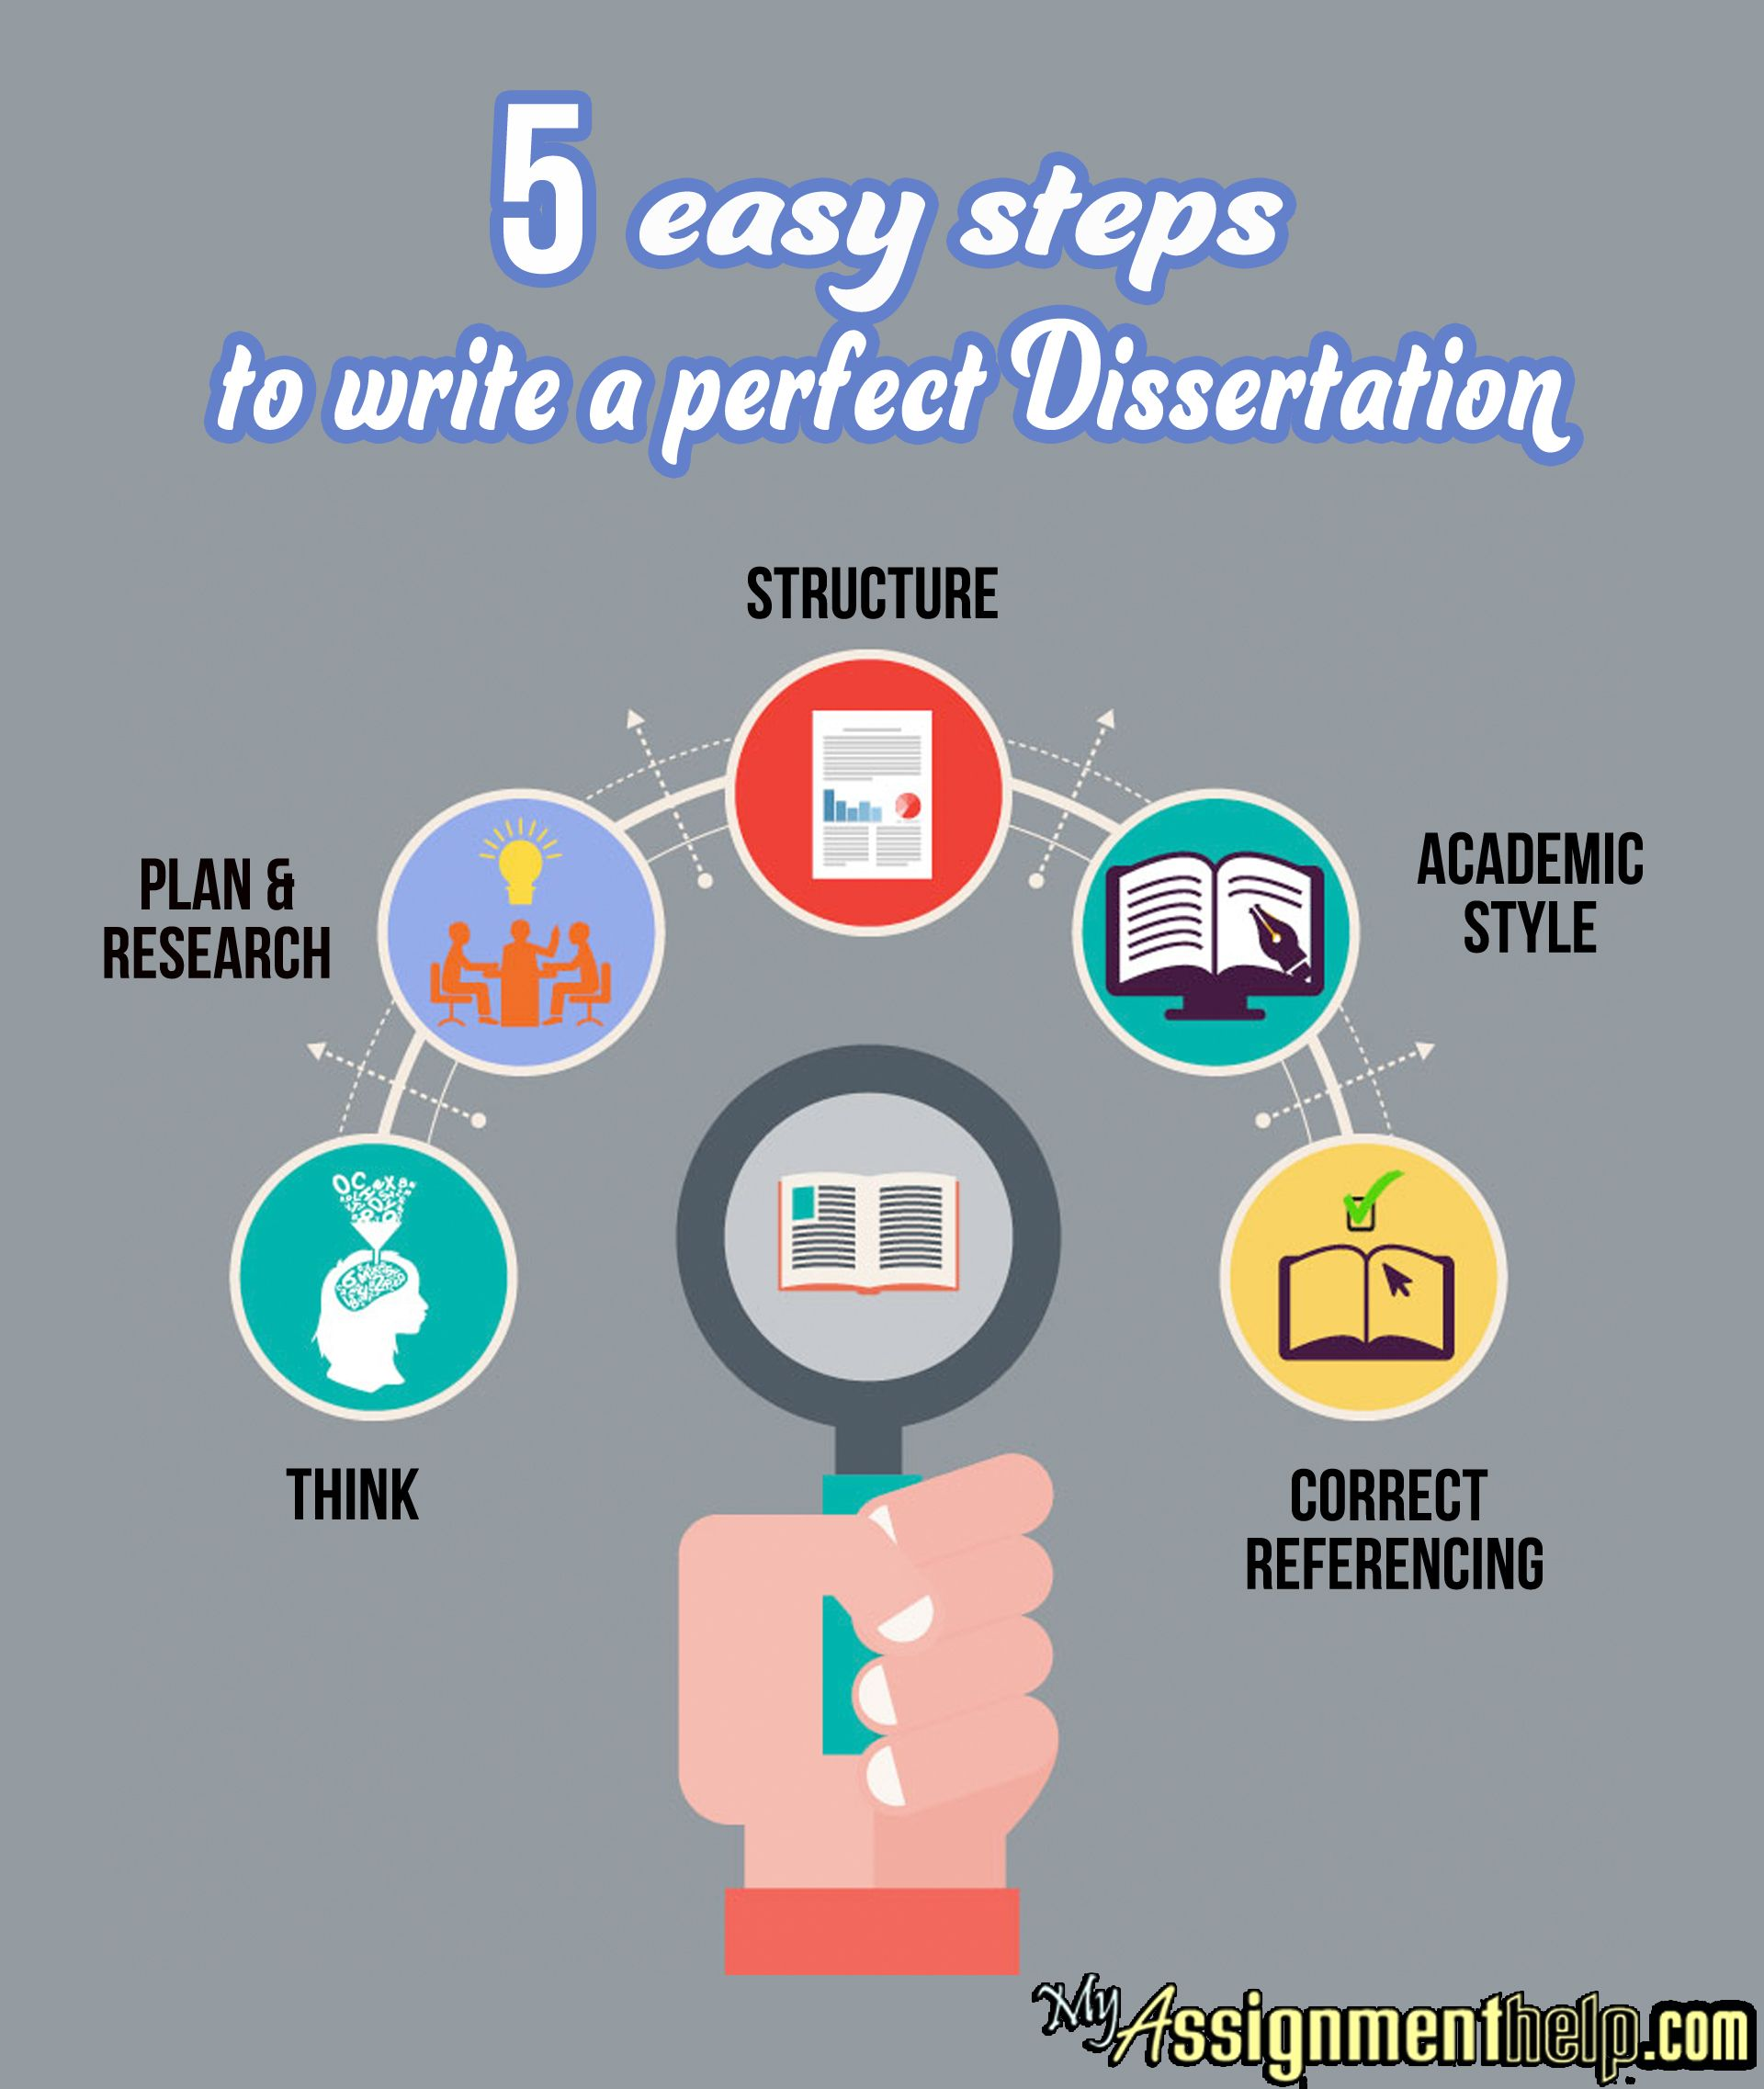 dissertation writings the academic papers uk is providing cheap  dissertation writings the academic papers uk is providing cheap dissertation writing services essay writing